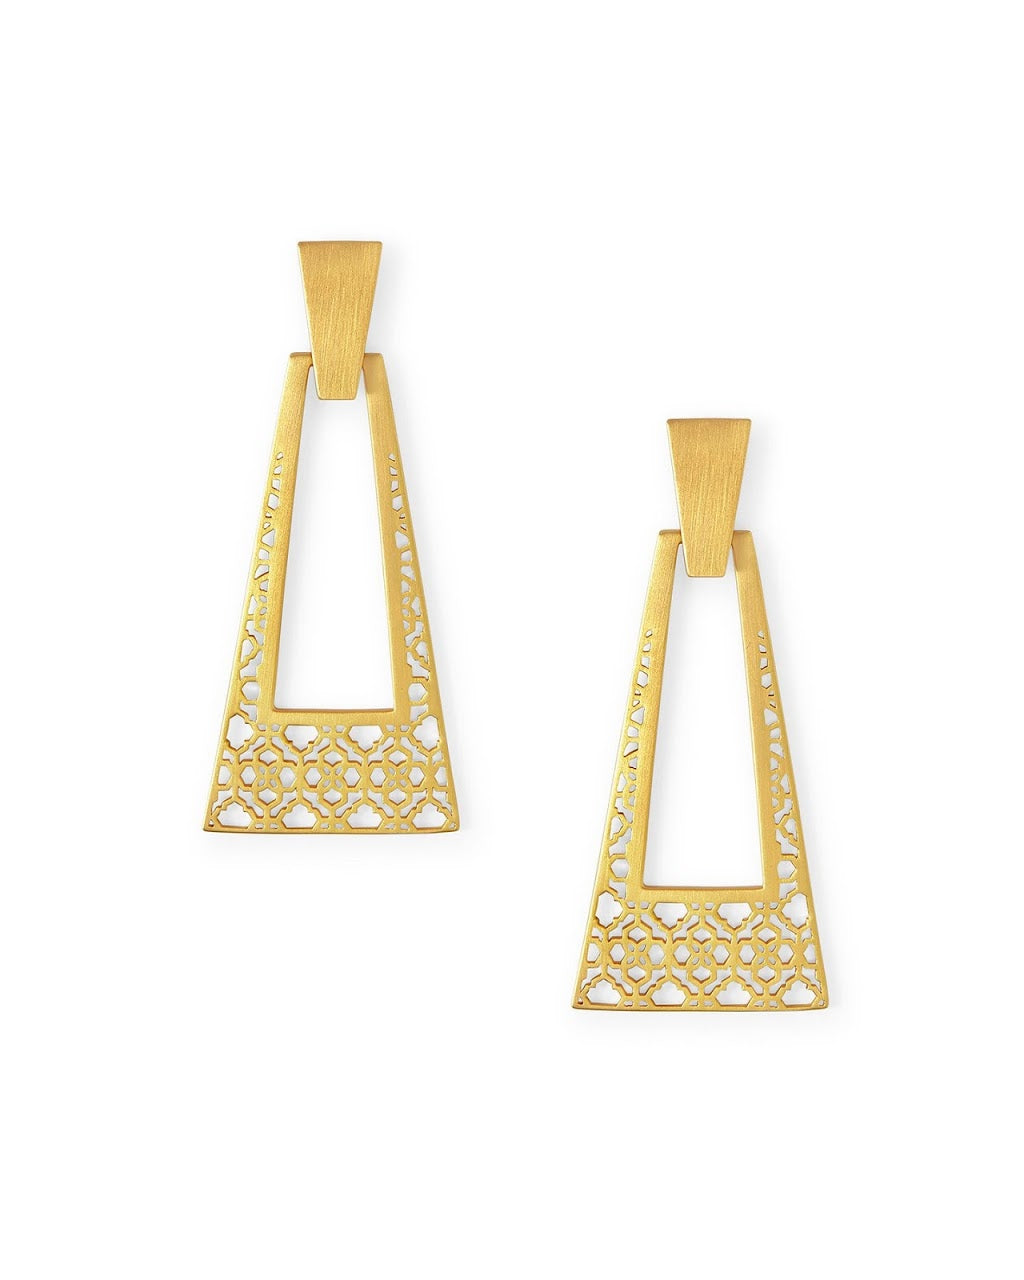 Kase Vintage Gold Large Statement Earrings